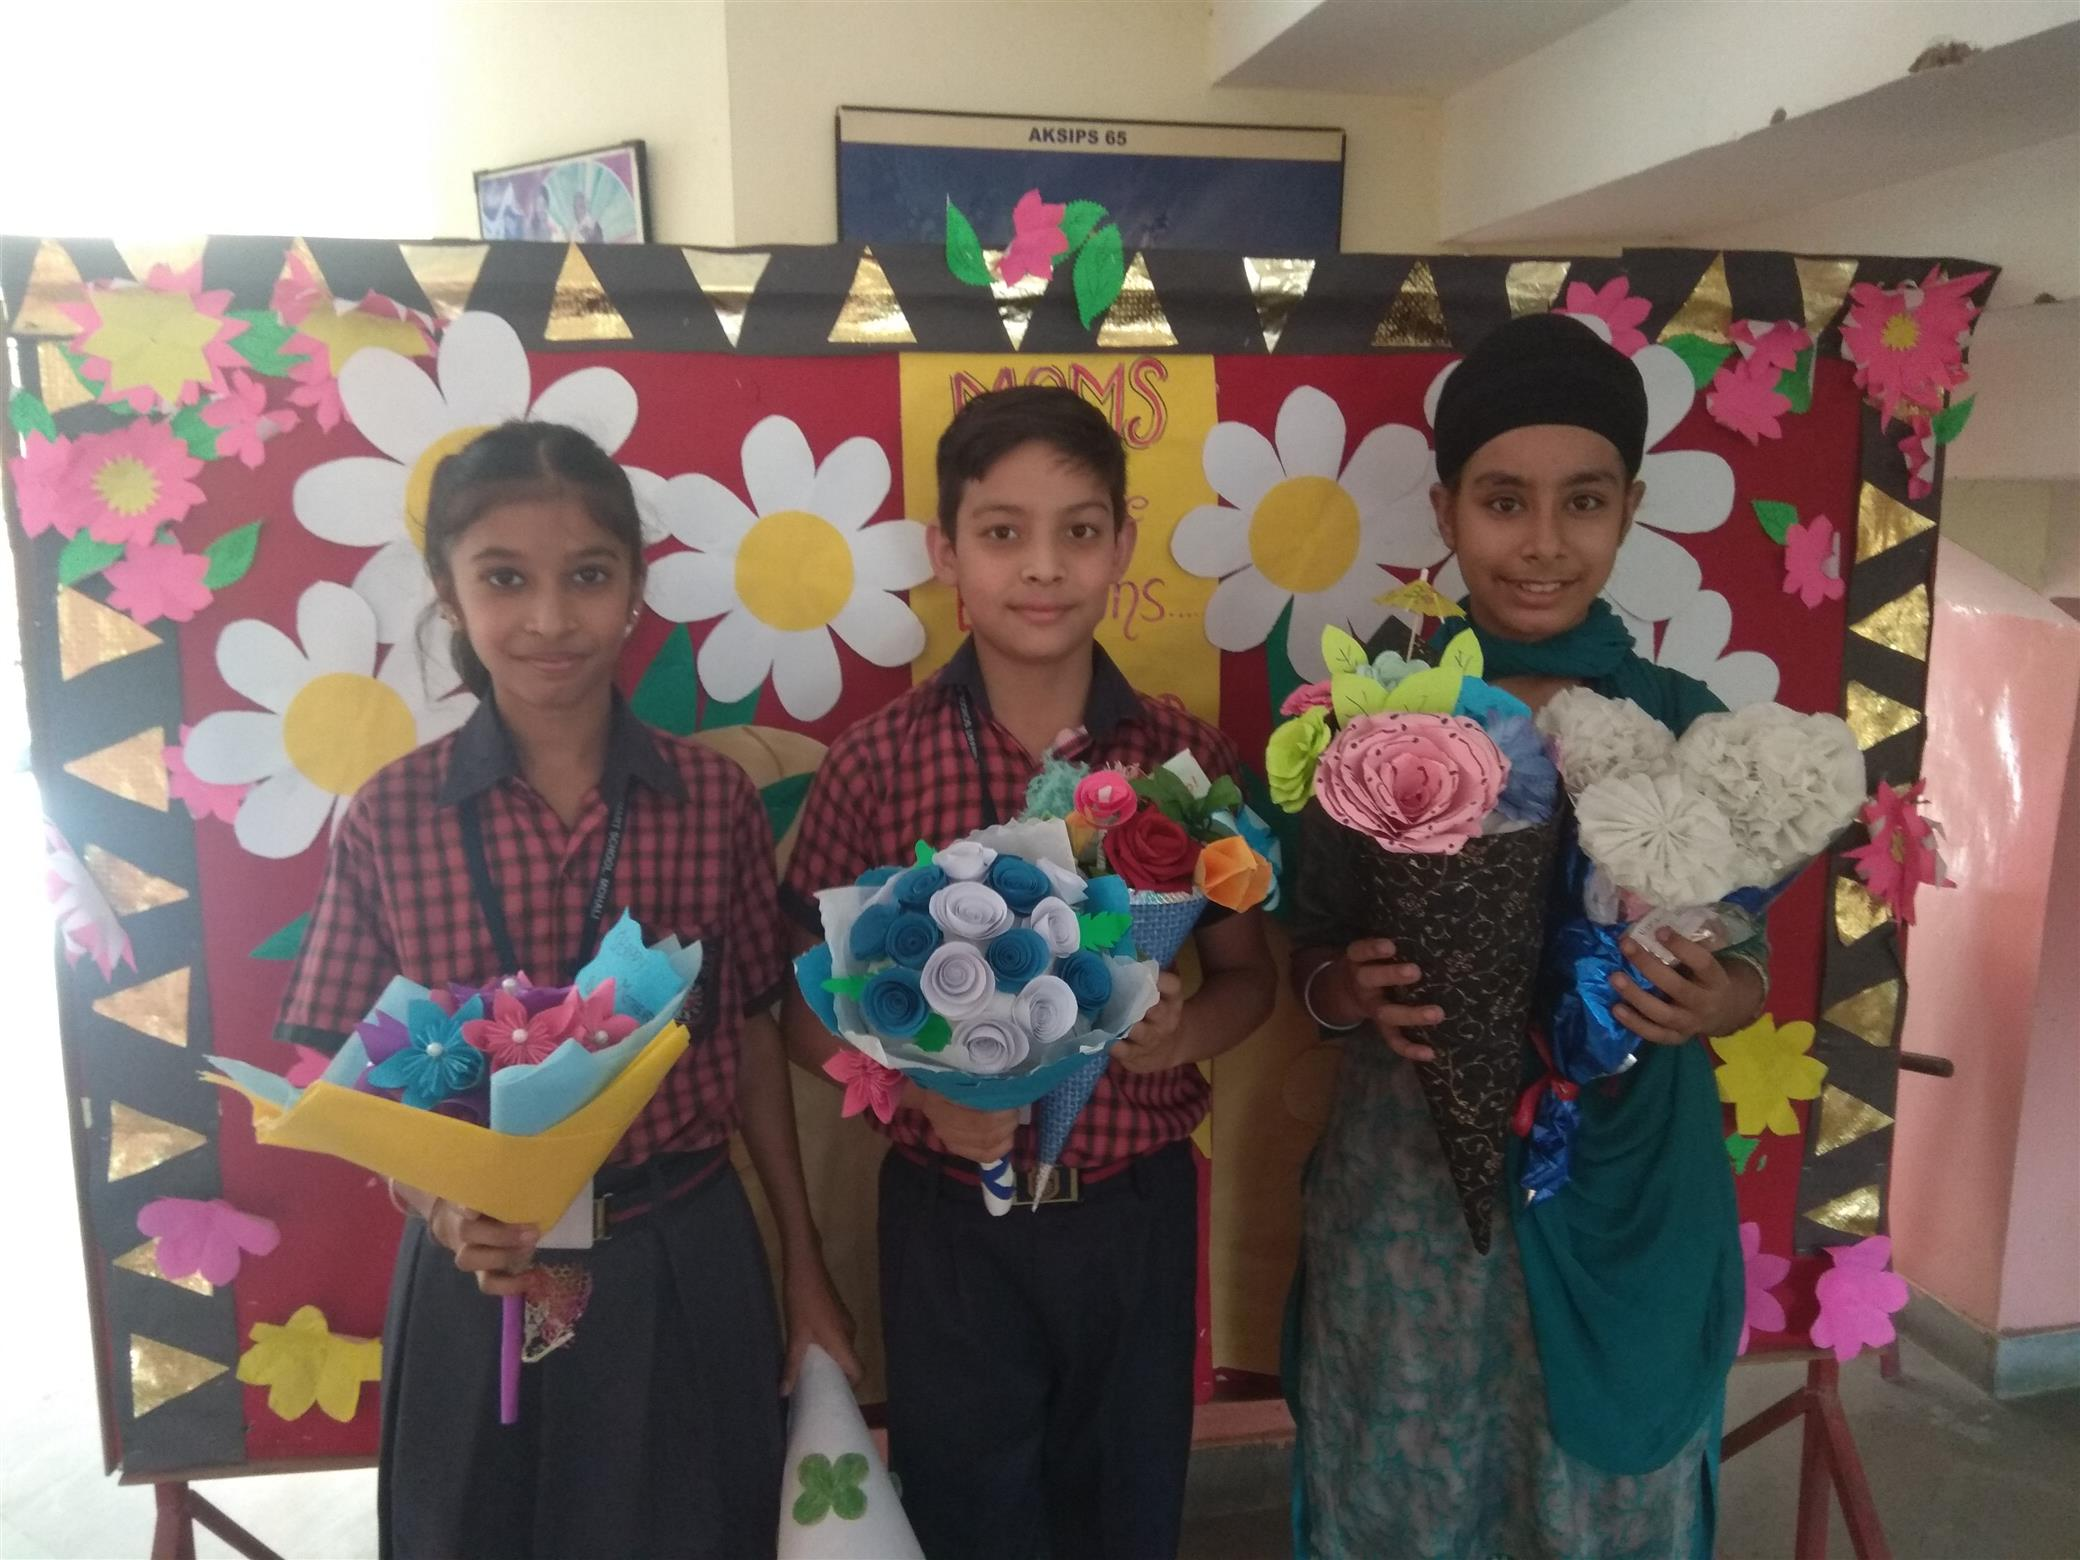 Mothers day activities | AKSIPS 65 Chandigarh